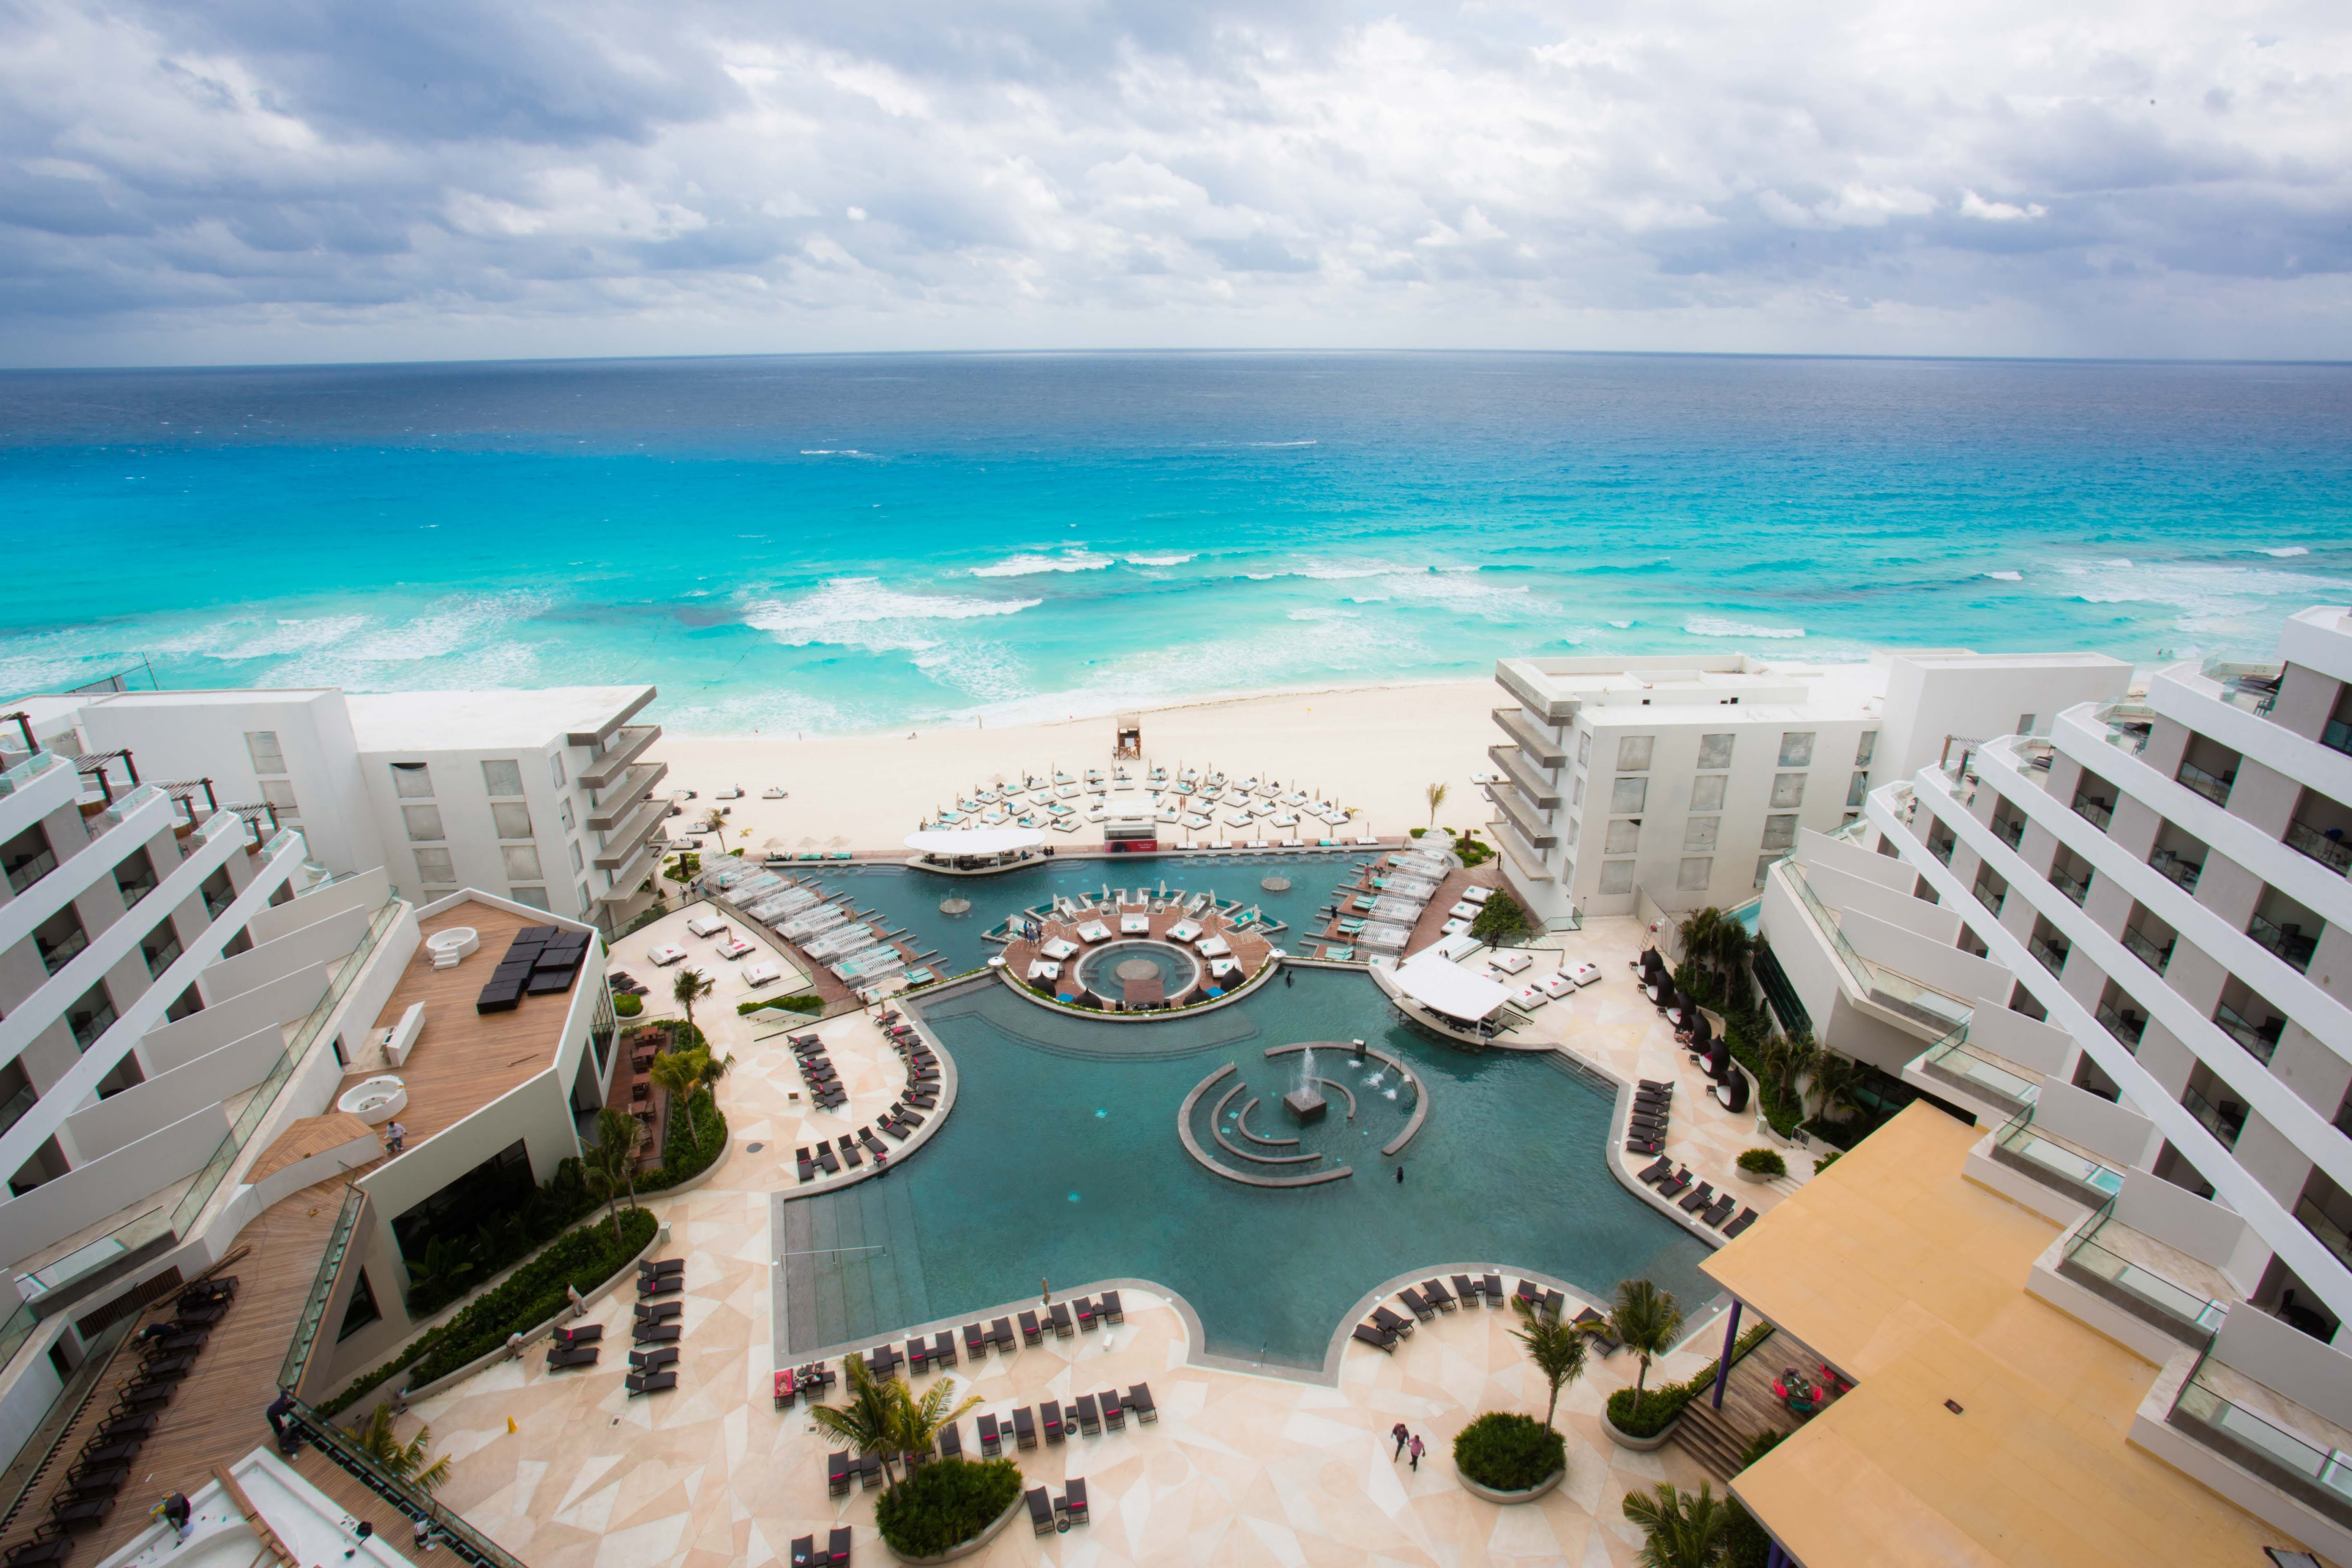 Melody Maker Cancun  Funjet Vacations